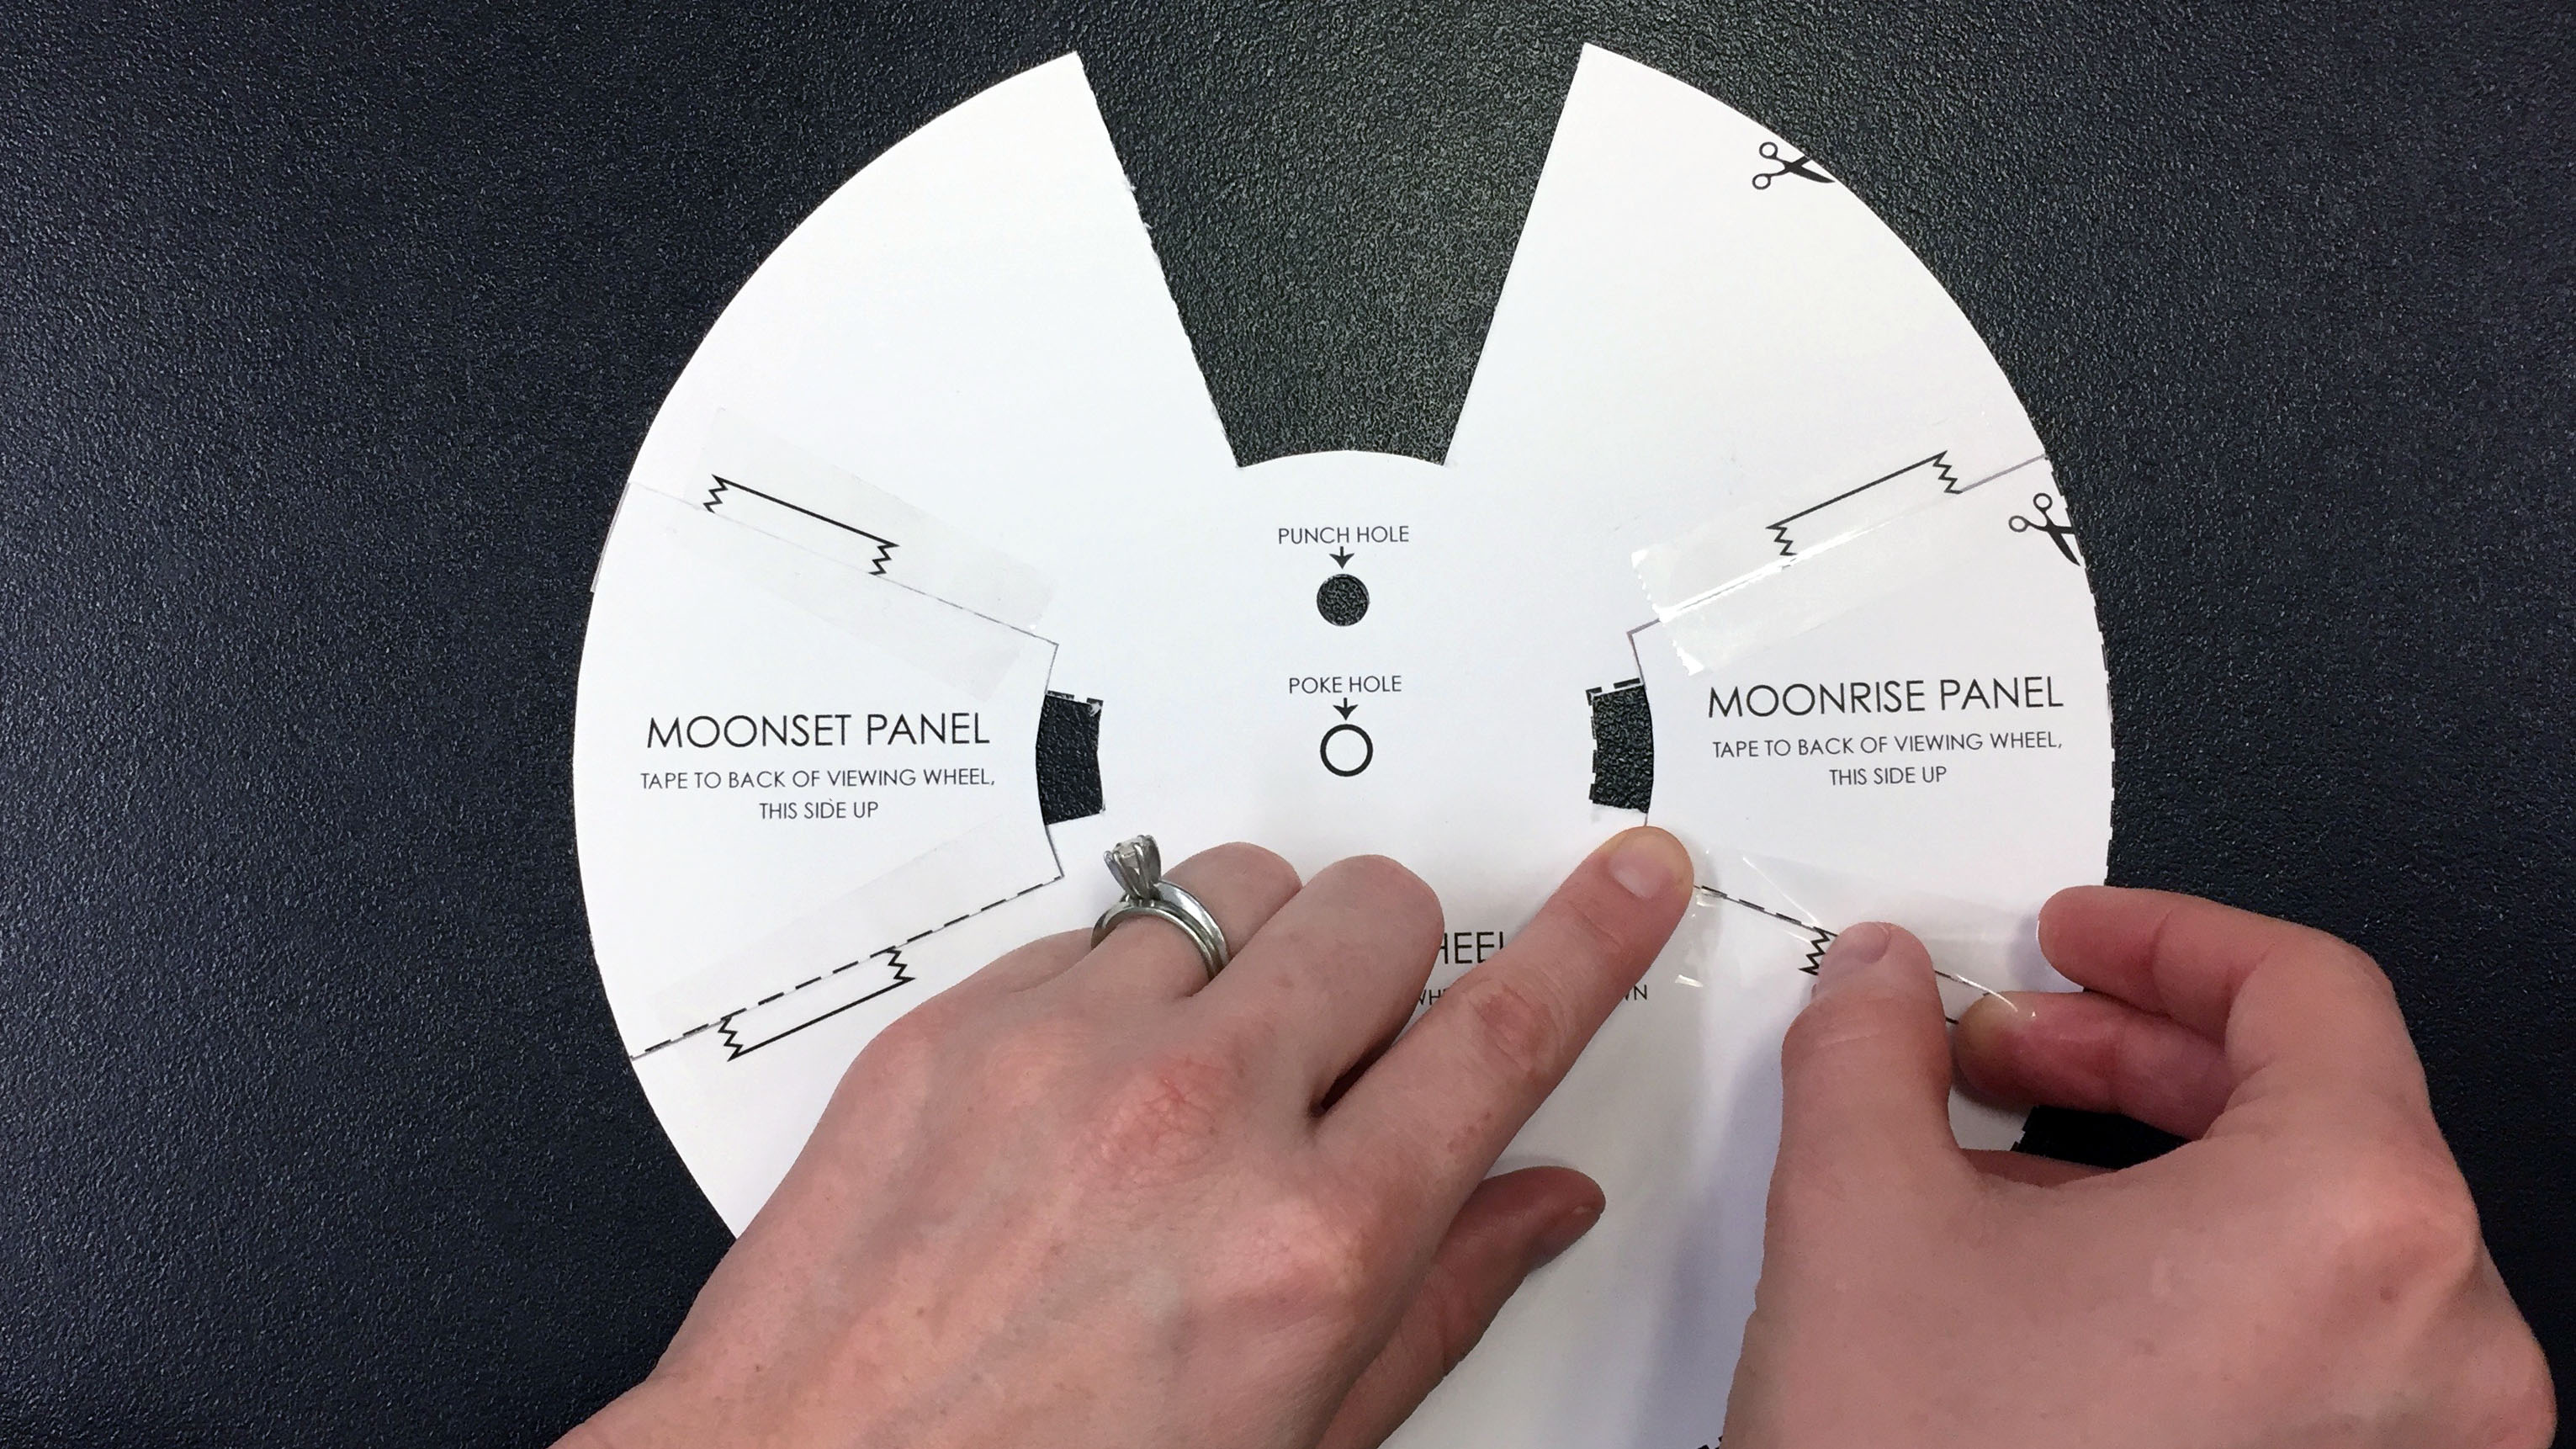 Tapping the Moonrise and Moonset panels to the back of the Viewing Wheel.